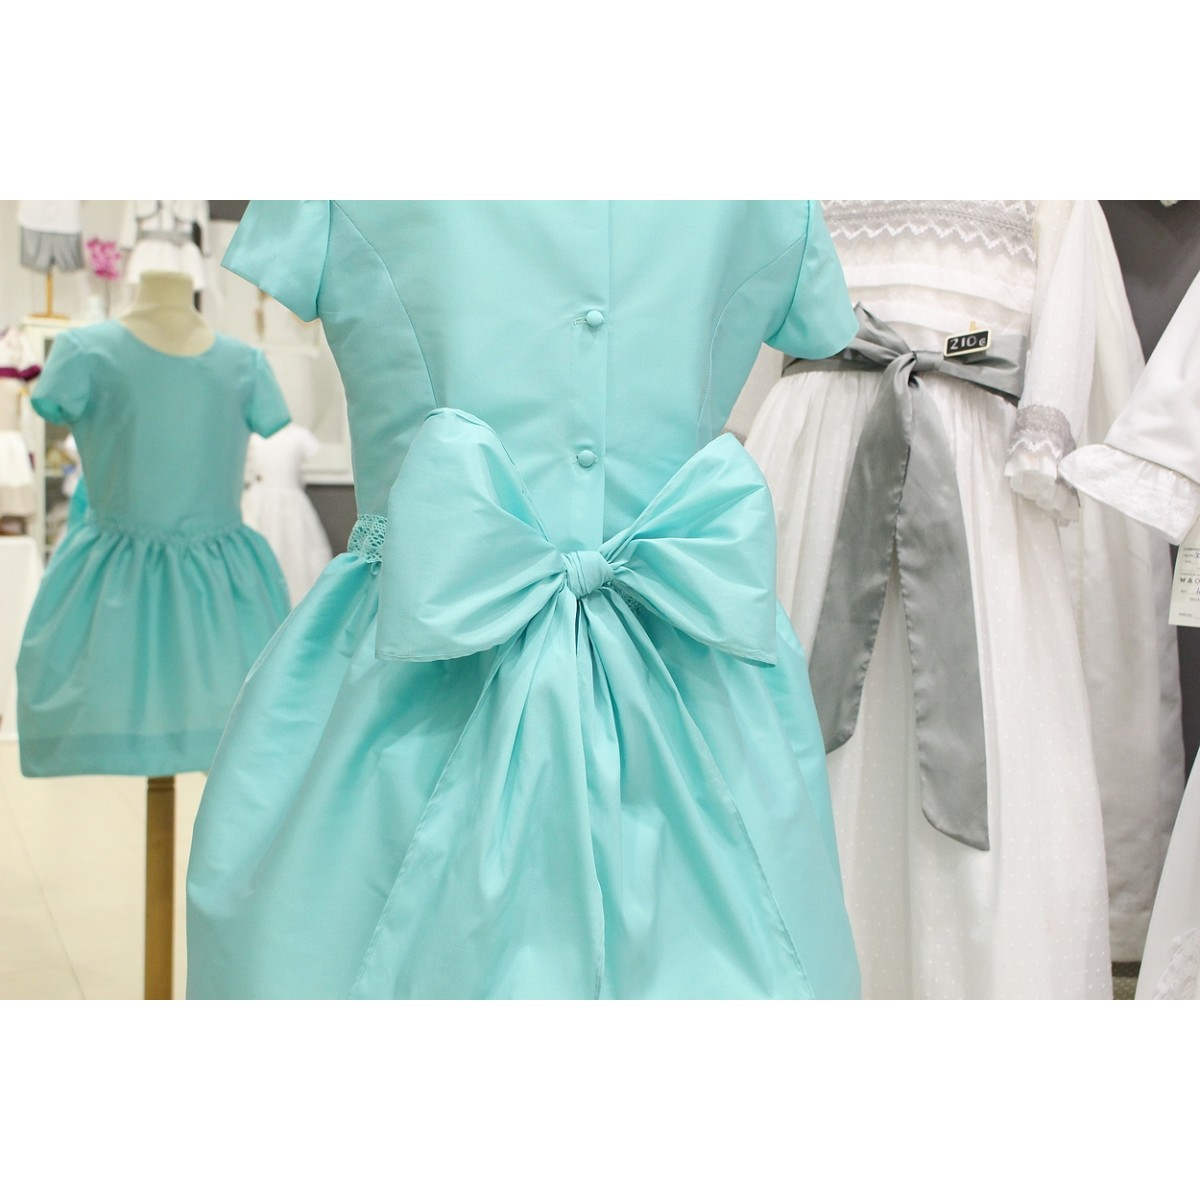 Turquoise Silk Flower Girl Dress Great Back Bow Golositos Ropa